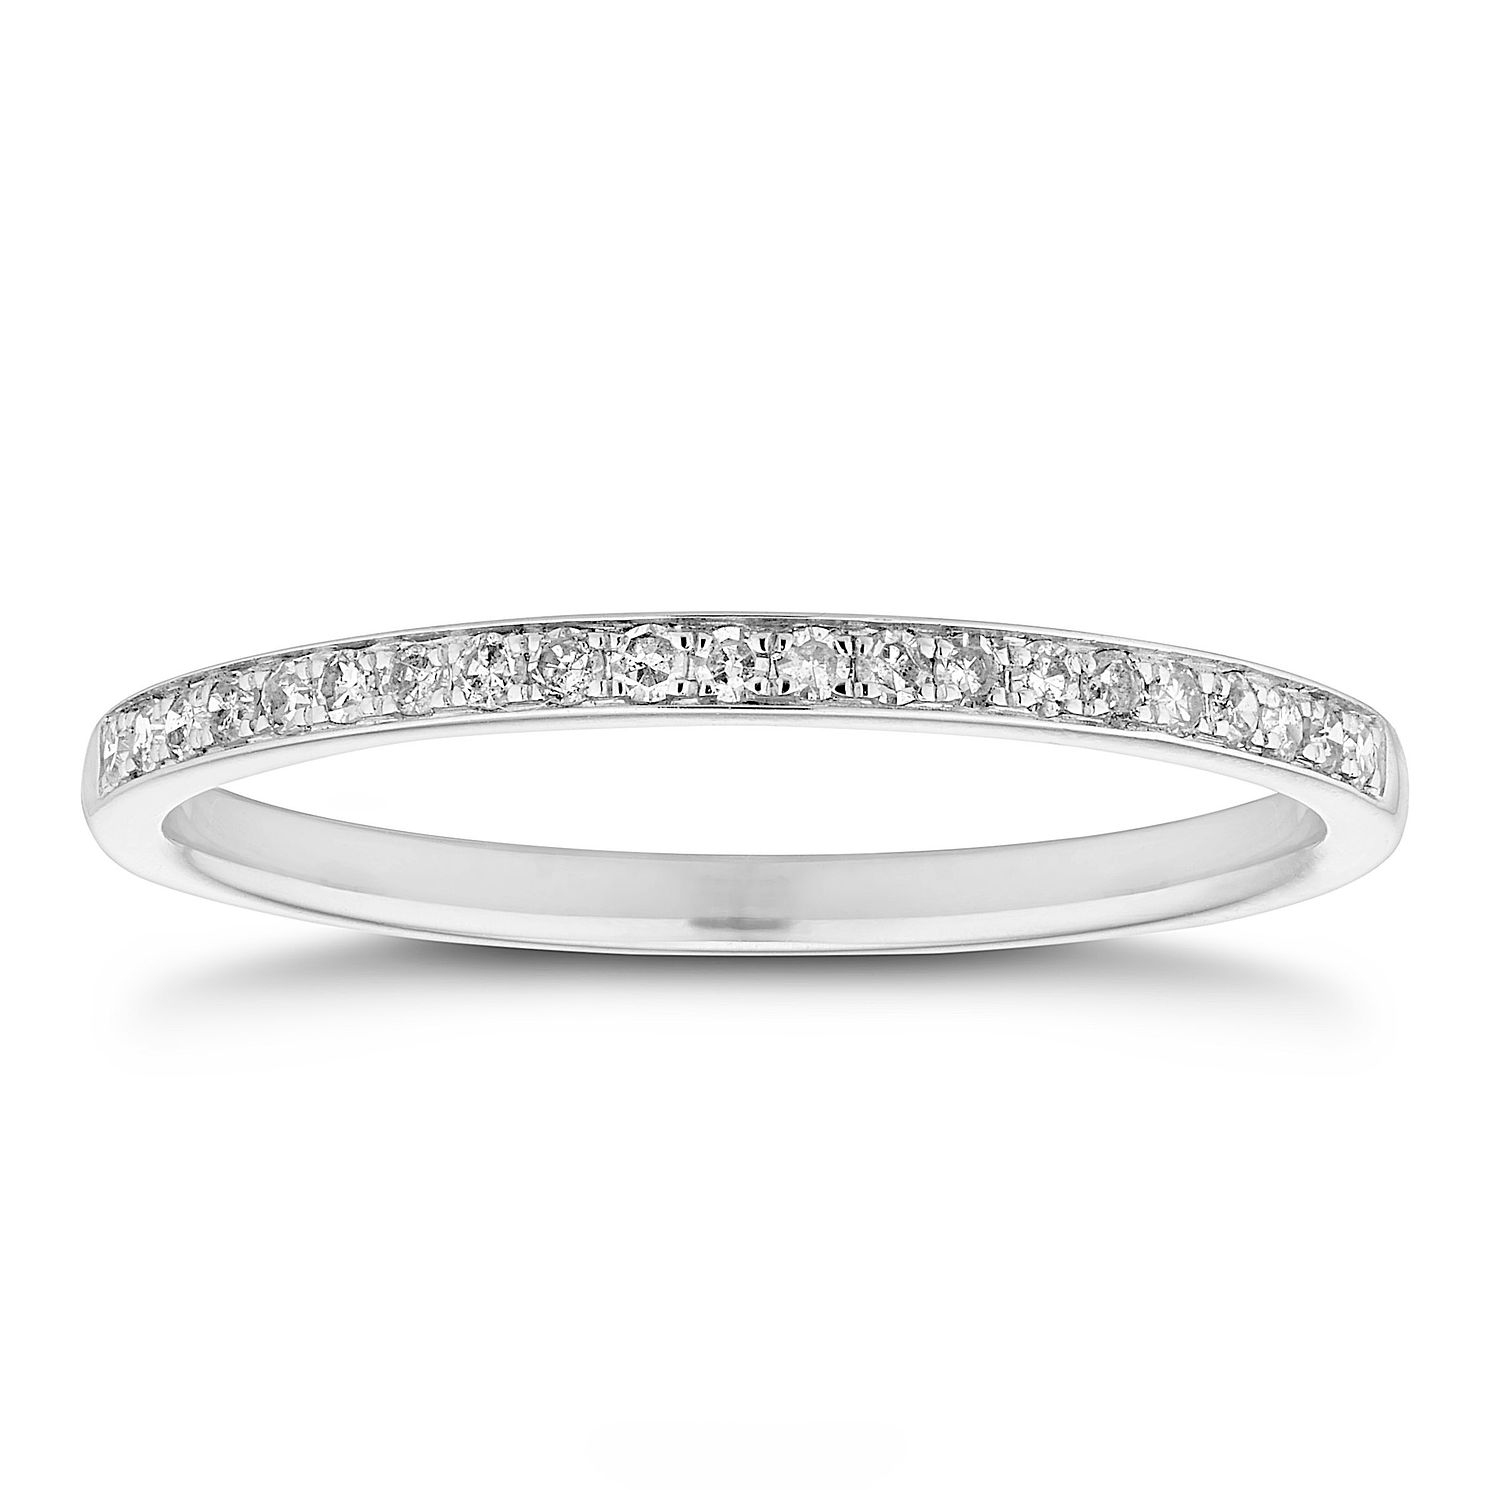 18ct White Gold 1/10ct Diamond Ring - Product number 8463611